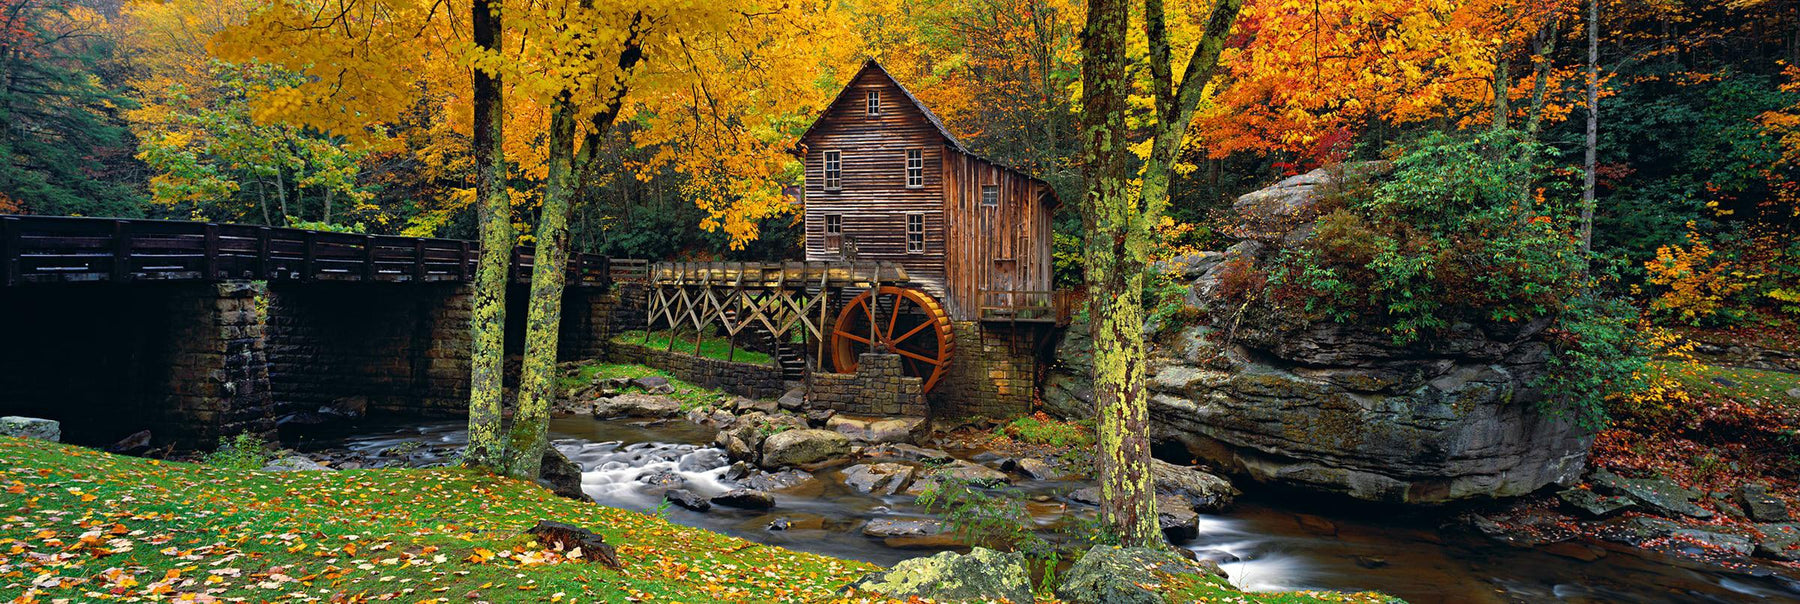 Old wooden Glade Creek Grist Mill on the rivers edge in the Appalachian Mountains during Fall